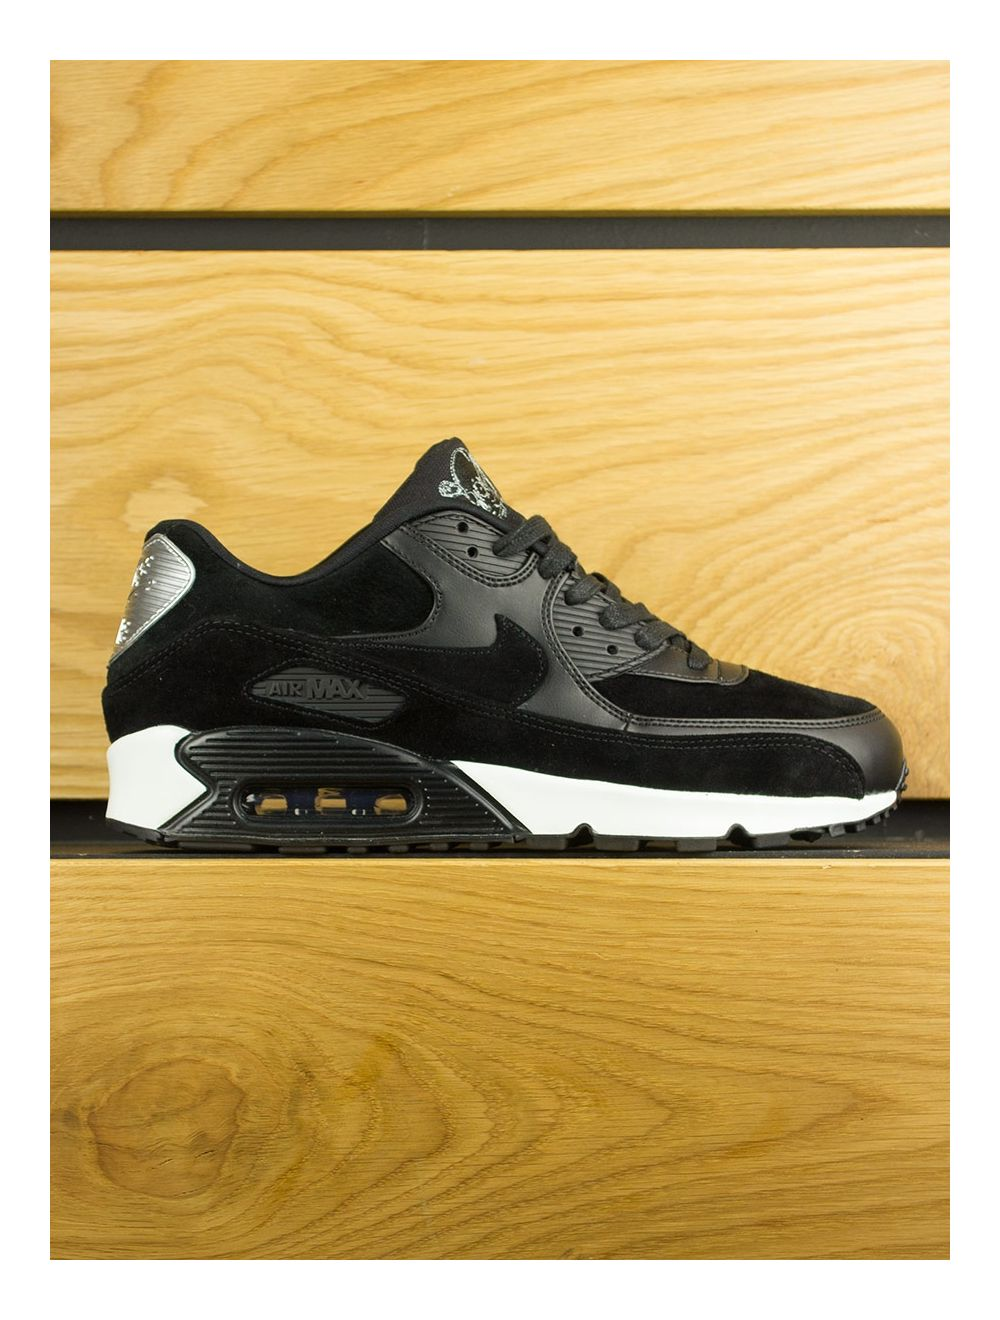 Nike Air Max 90 Premium 'Rebel Skull' Black Off White